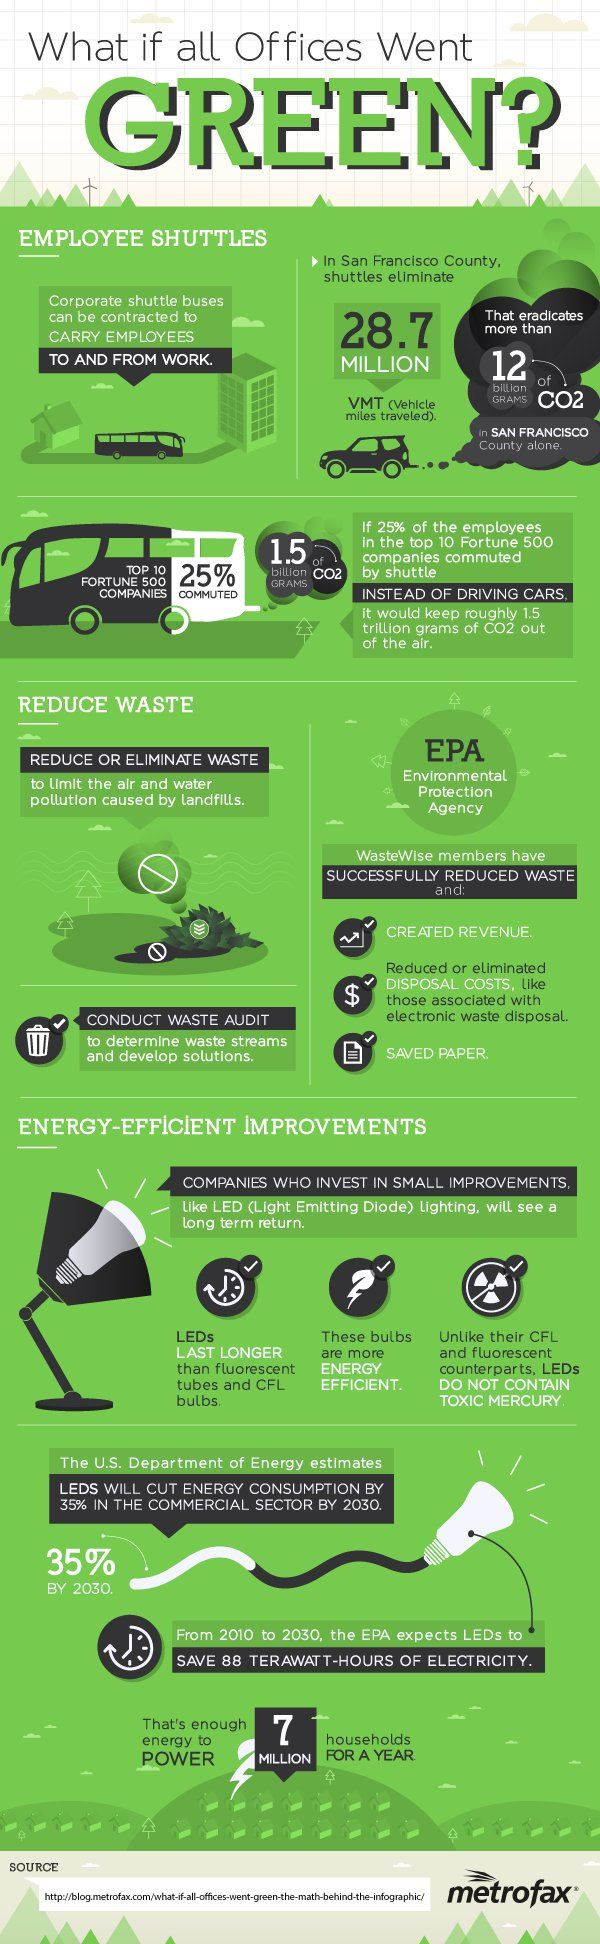 What if all Offices went 'Green'?  Companies can increase revenue, reduce disposal costs, and save money on resources! #sustainability #earthday